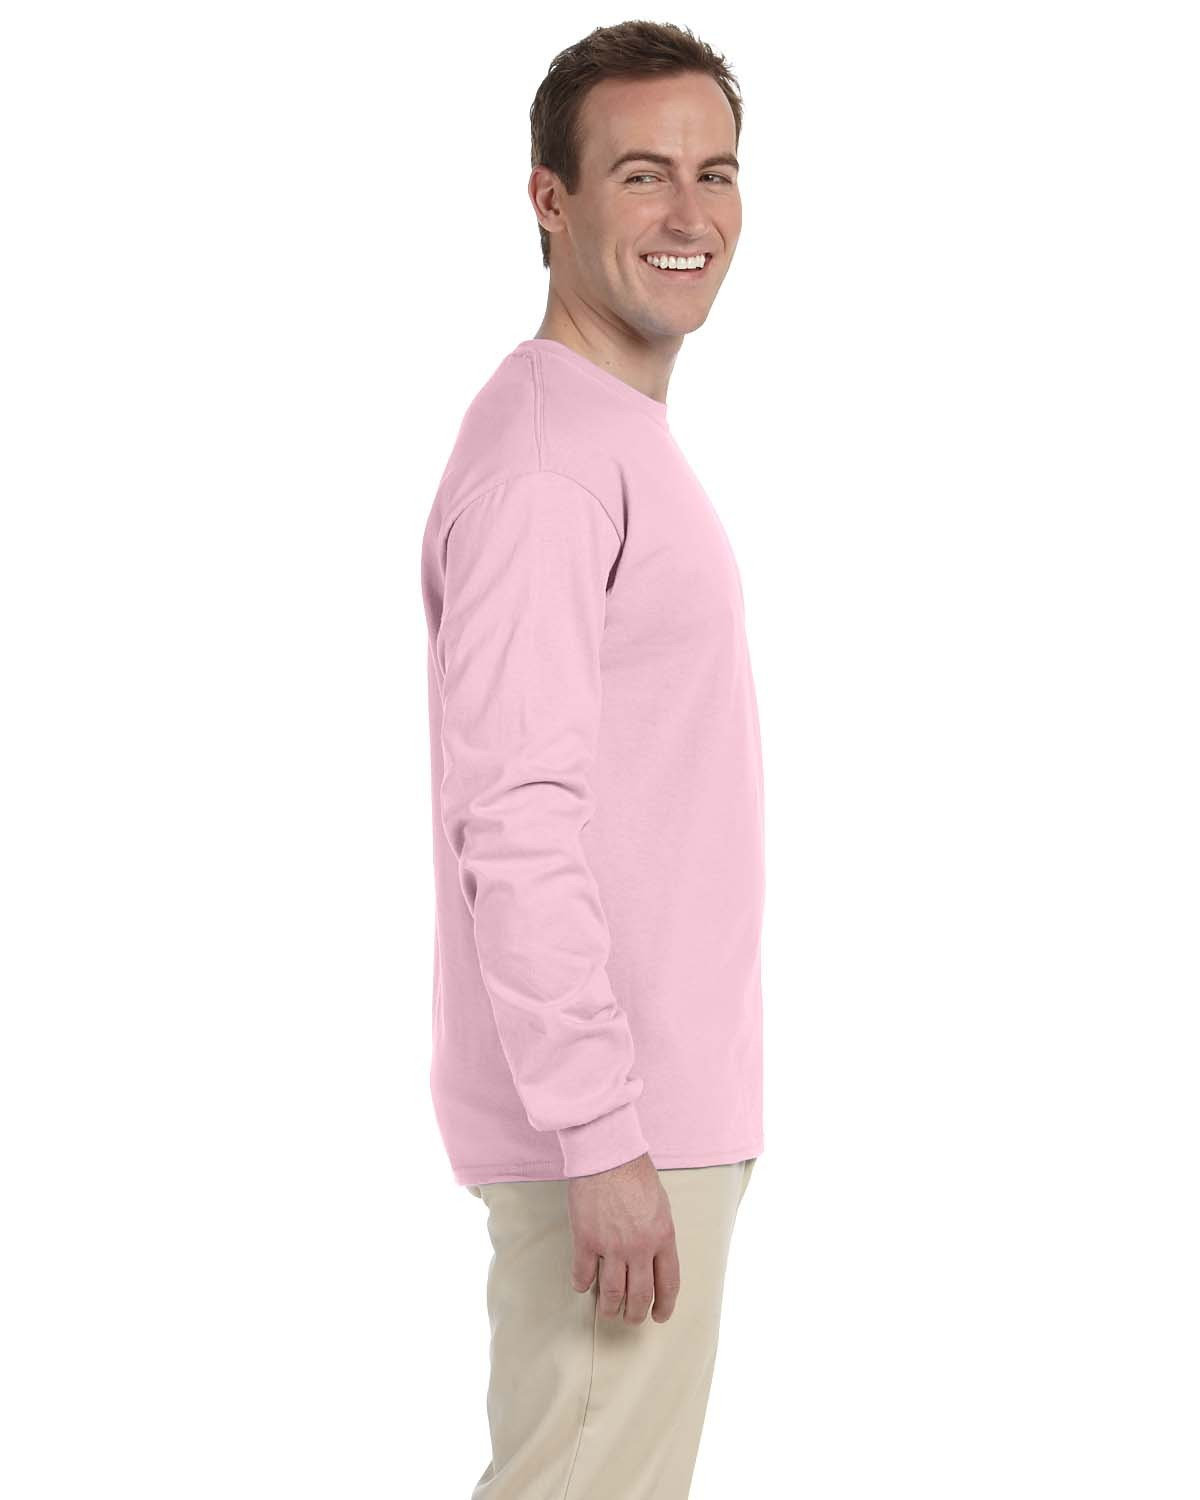 4930 Fruit of the Loom CLASSIC PINK